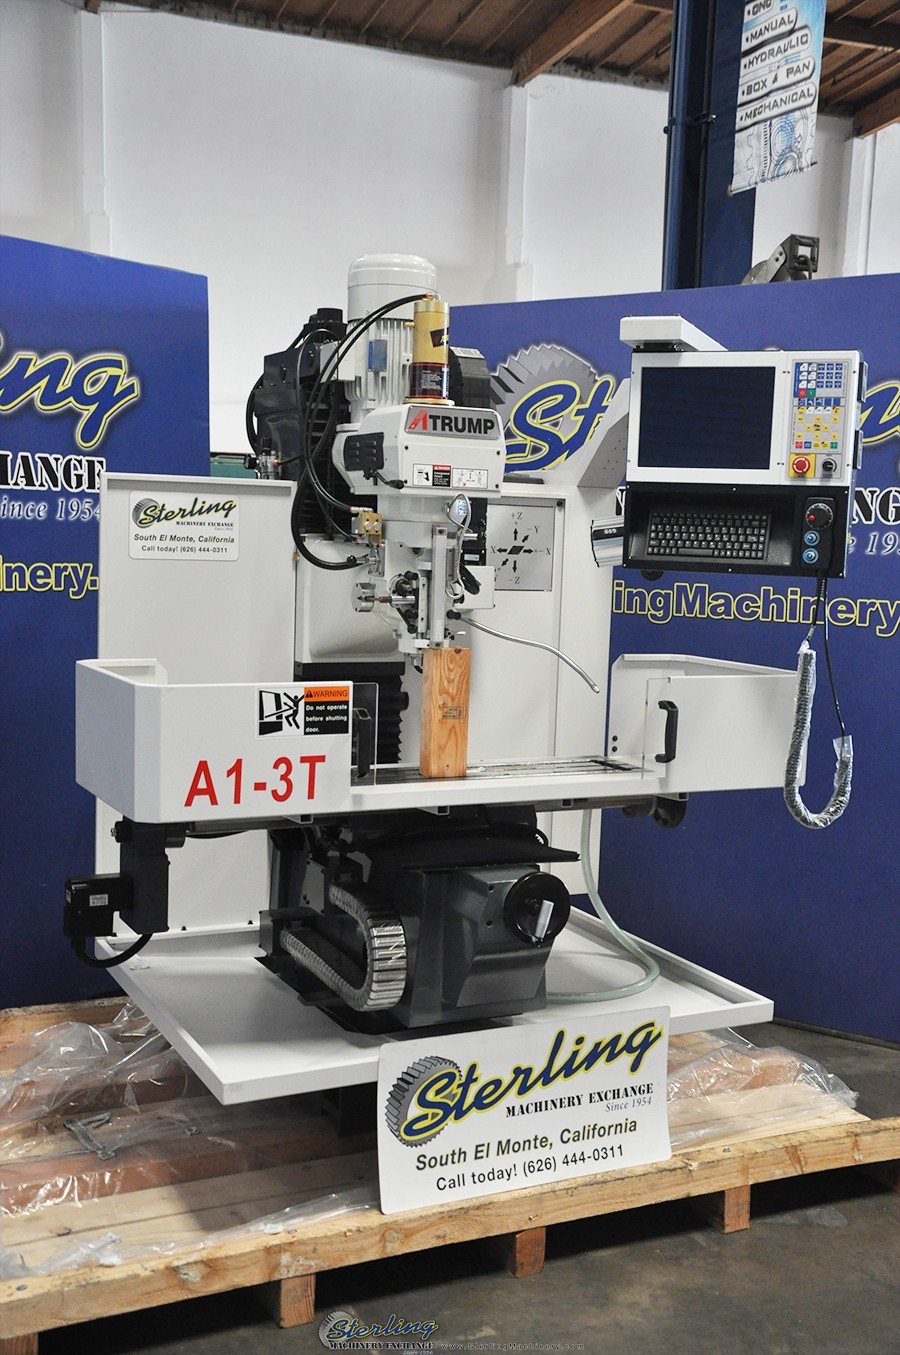 Brand New Atrump Cnc Bed Milling Machine Sterling Machinery